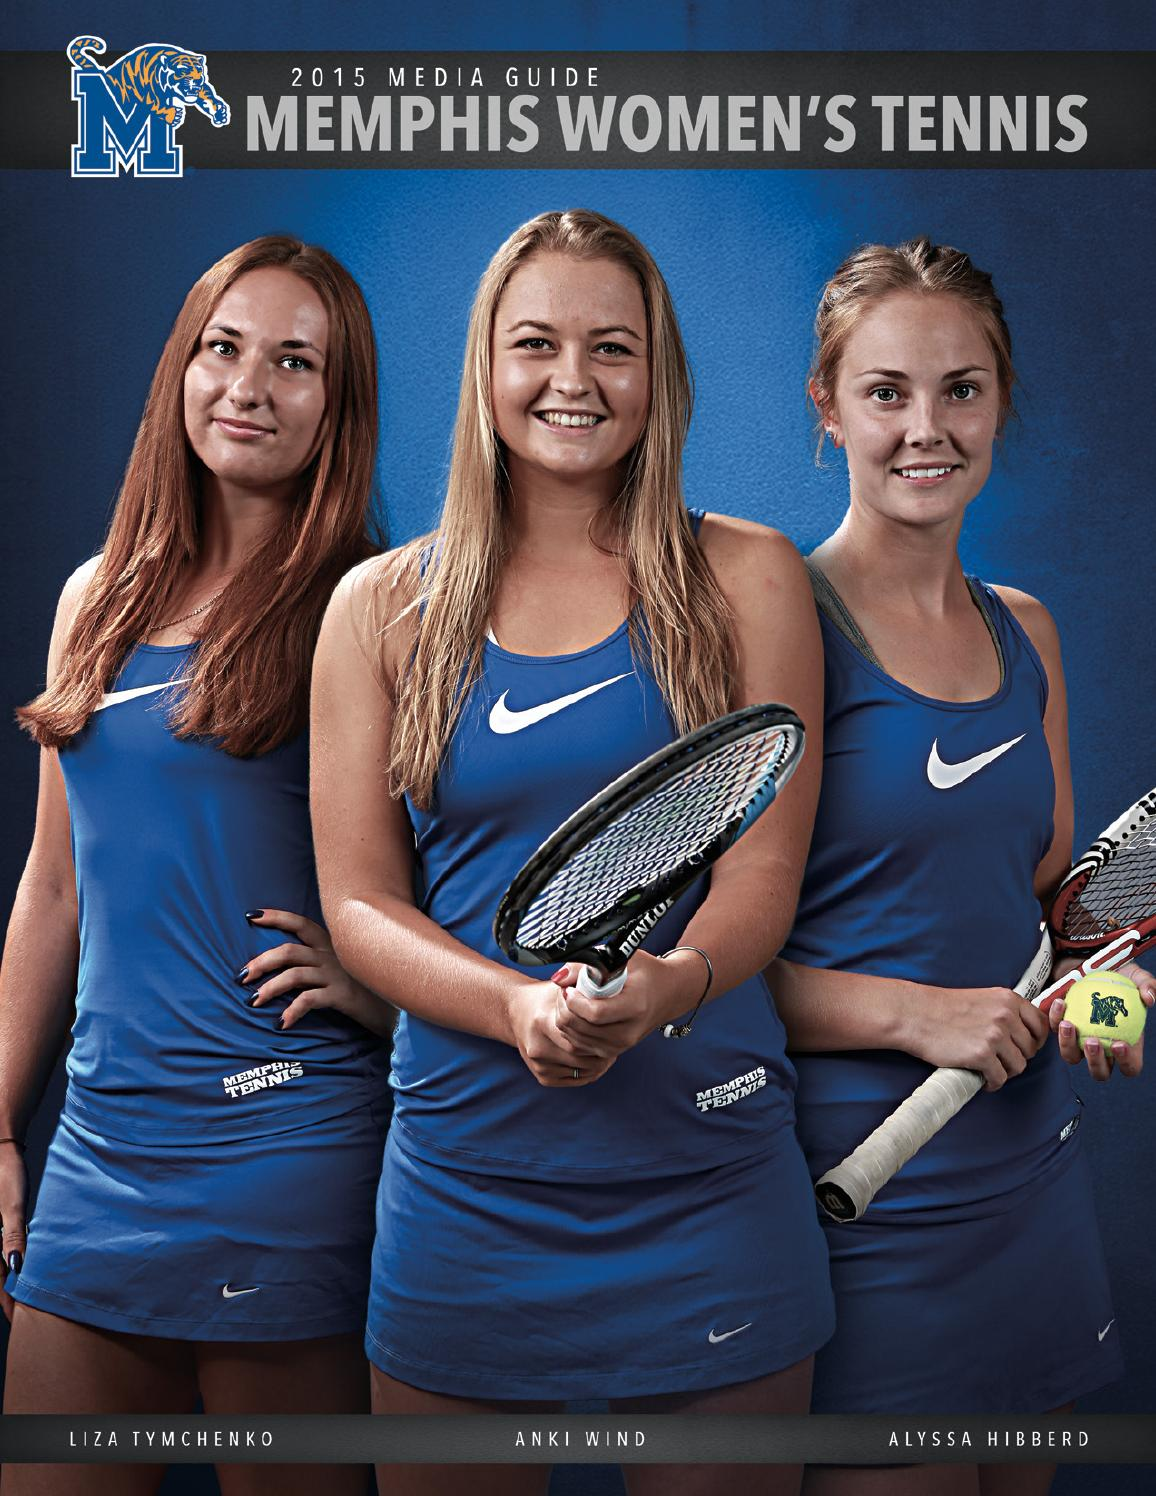 2015 Memphis Women's Tennis Media Guide by University of ...